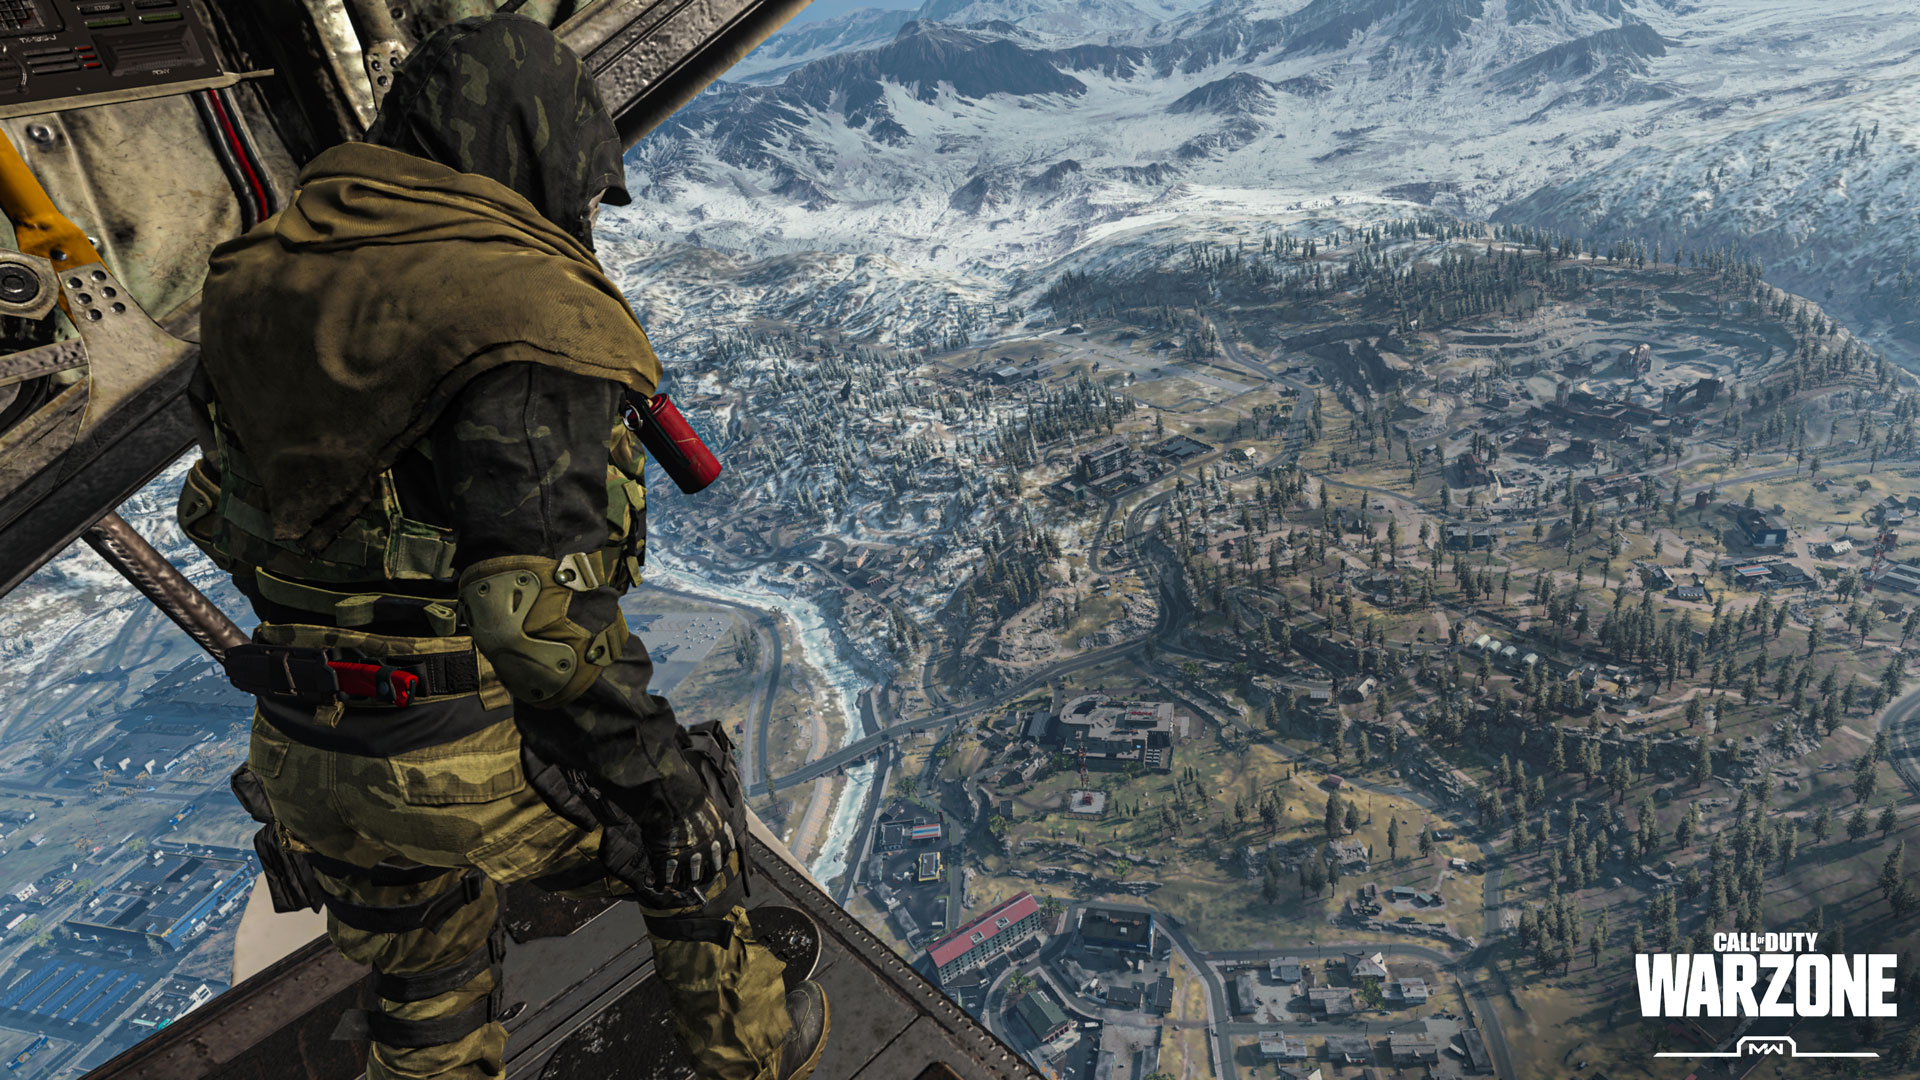 A screenshot of Call of Duty Warzone. A soldier dropping from a helicopter onto a vast landscape.